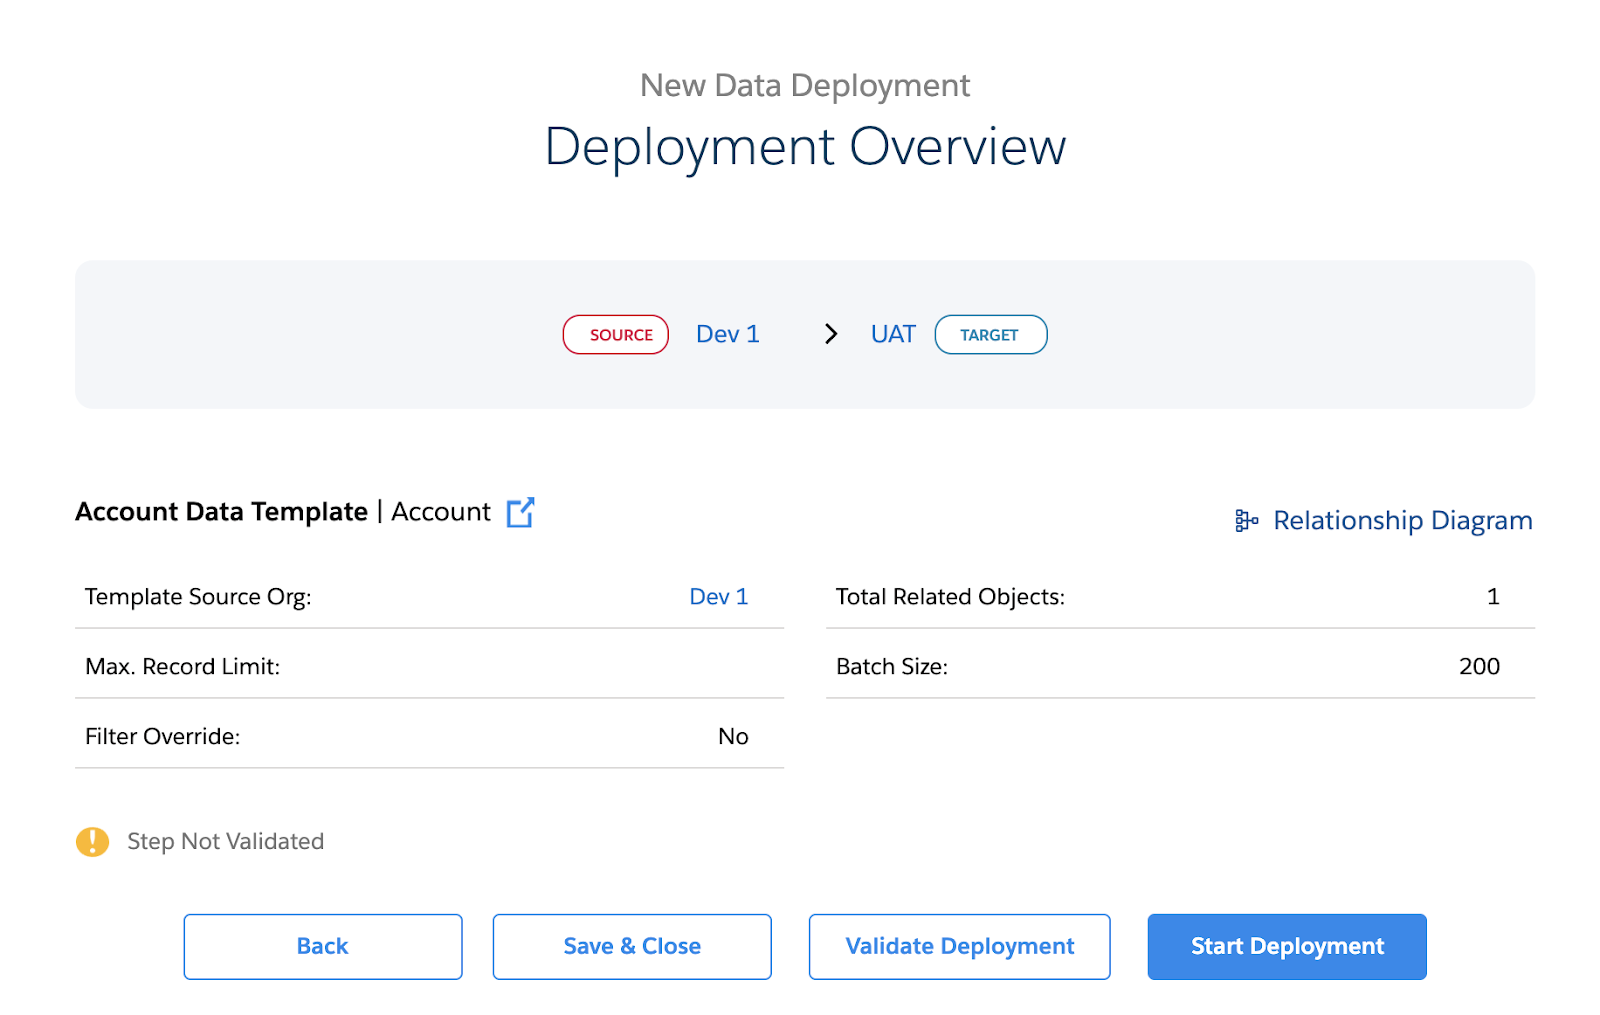 Deployment Overview screen